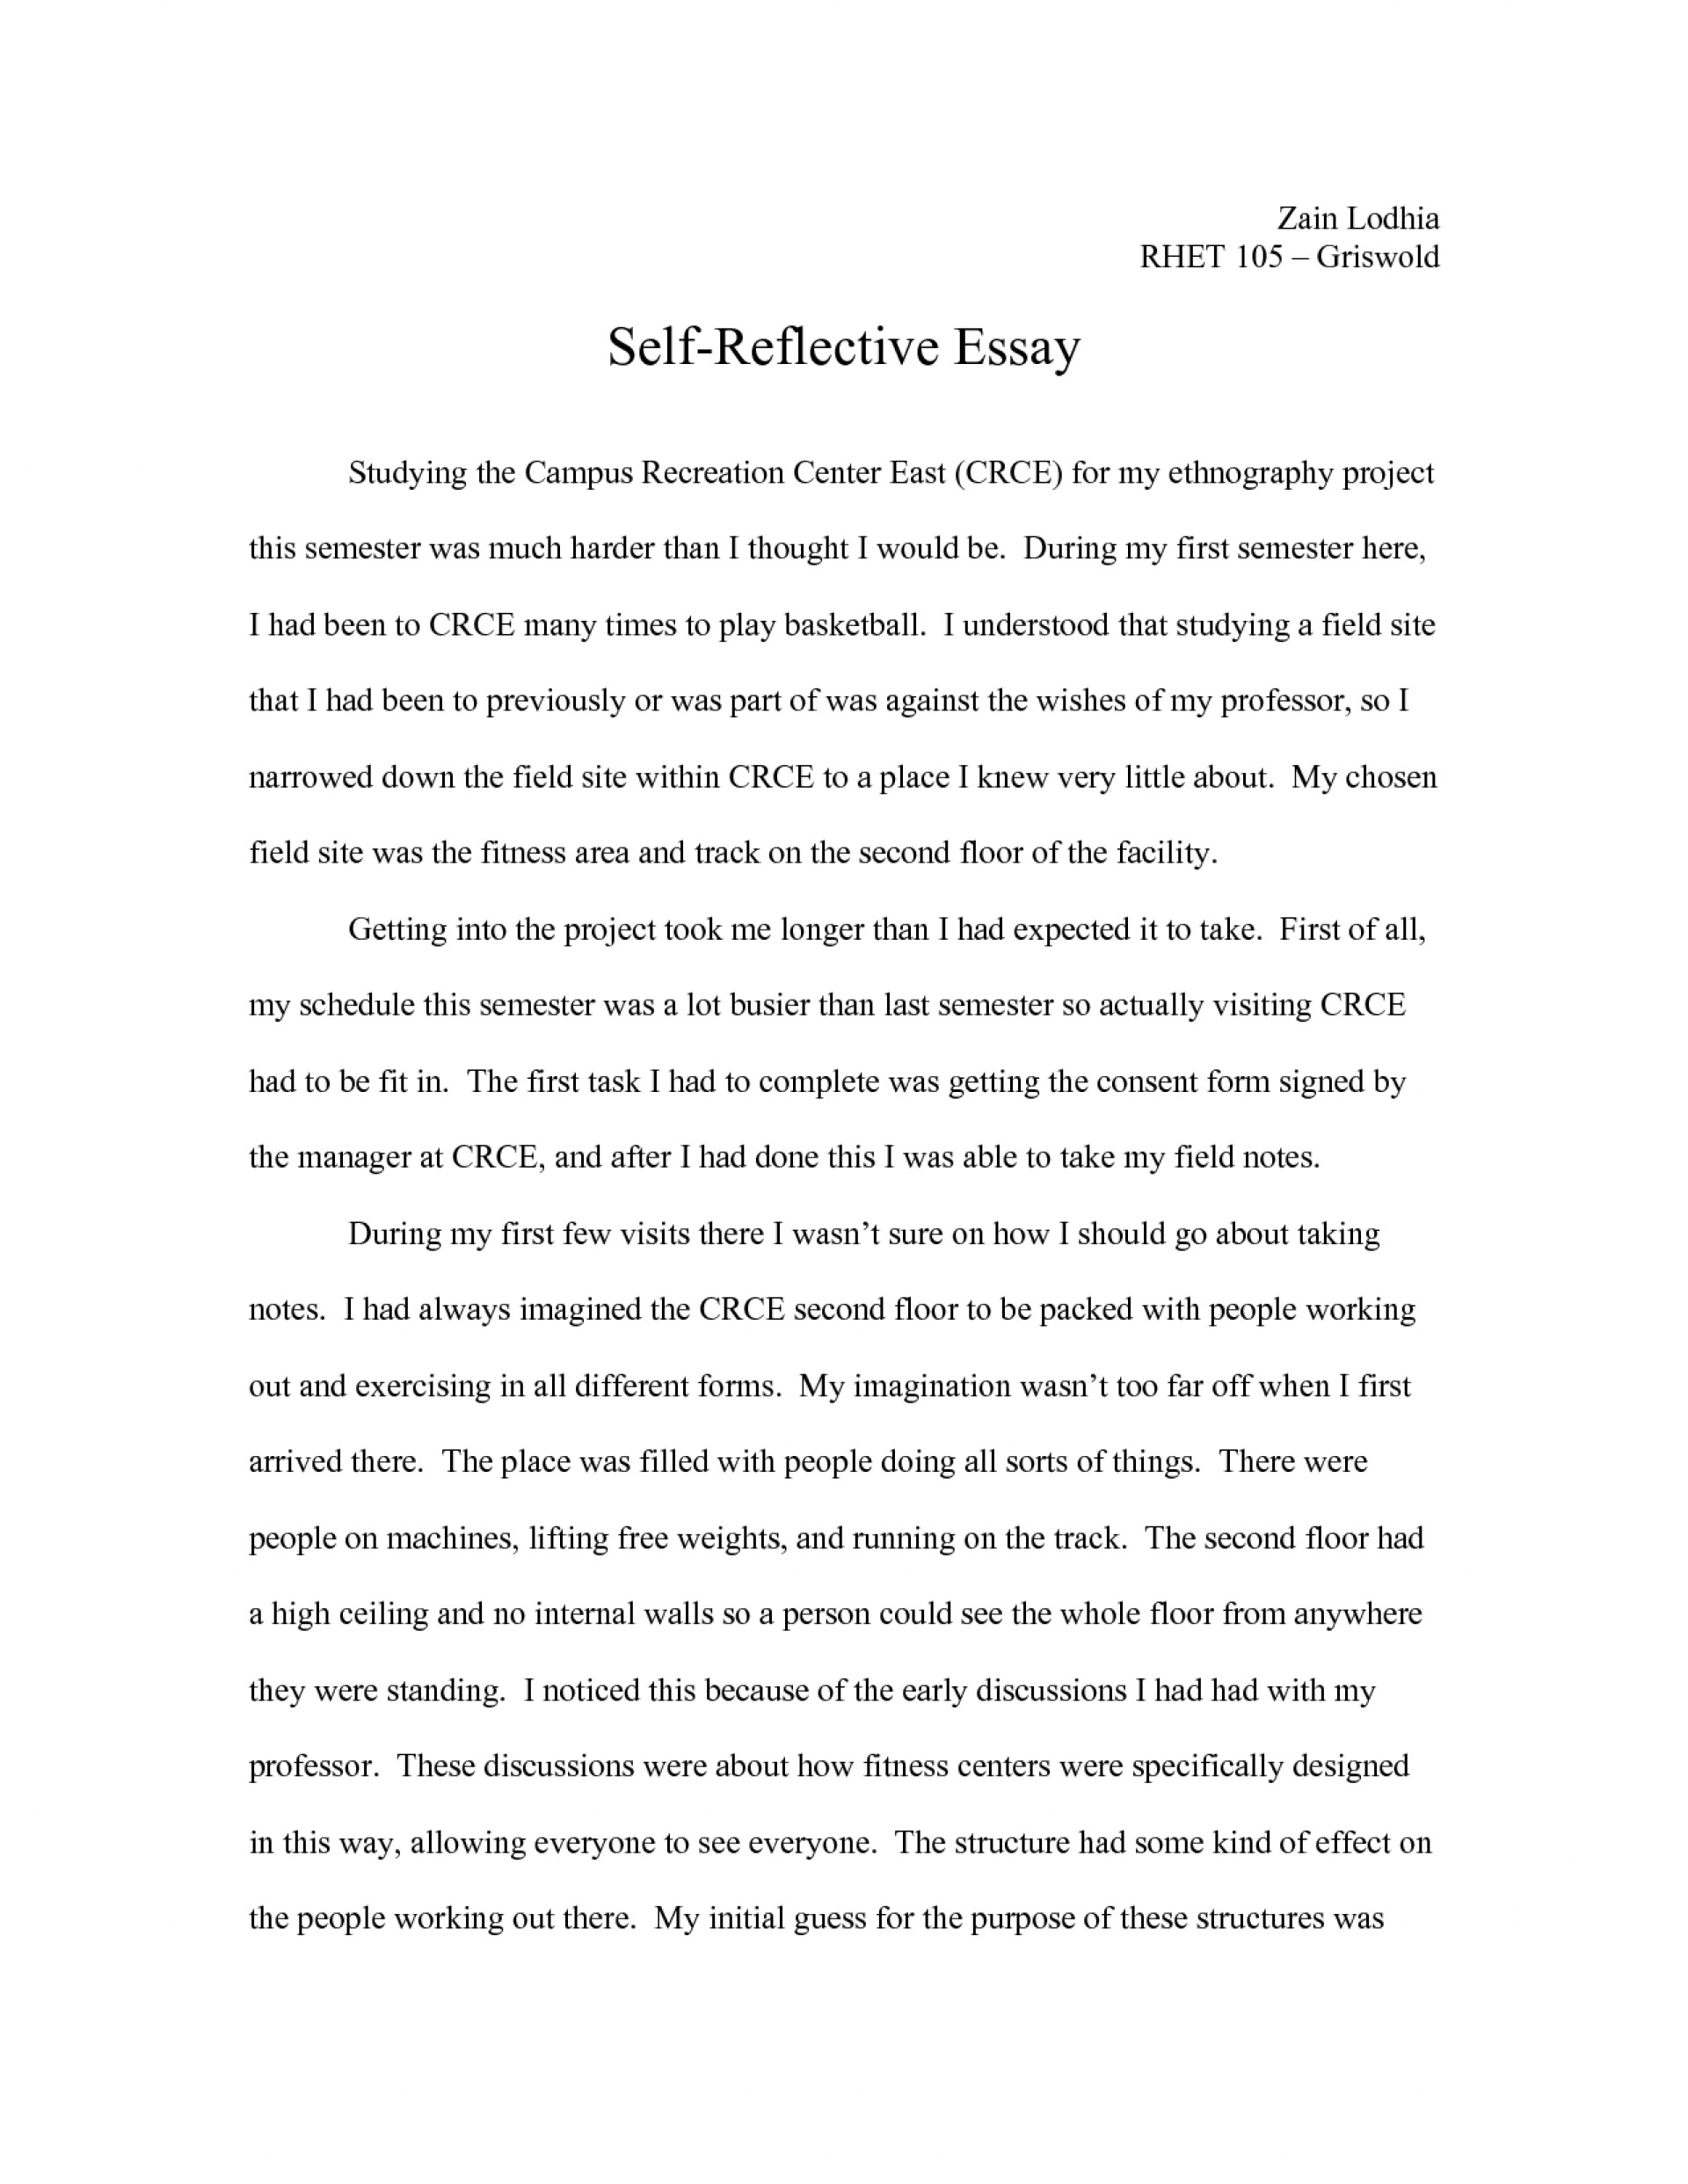 003 Qal0pwnf46 Reflective Essays Beautiful Essay Examples Writing Pdf College Sample 1920